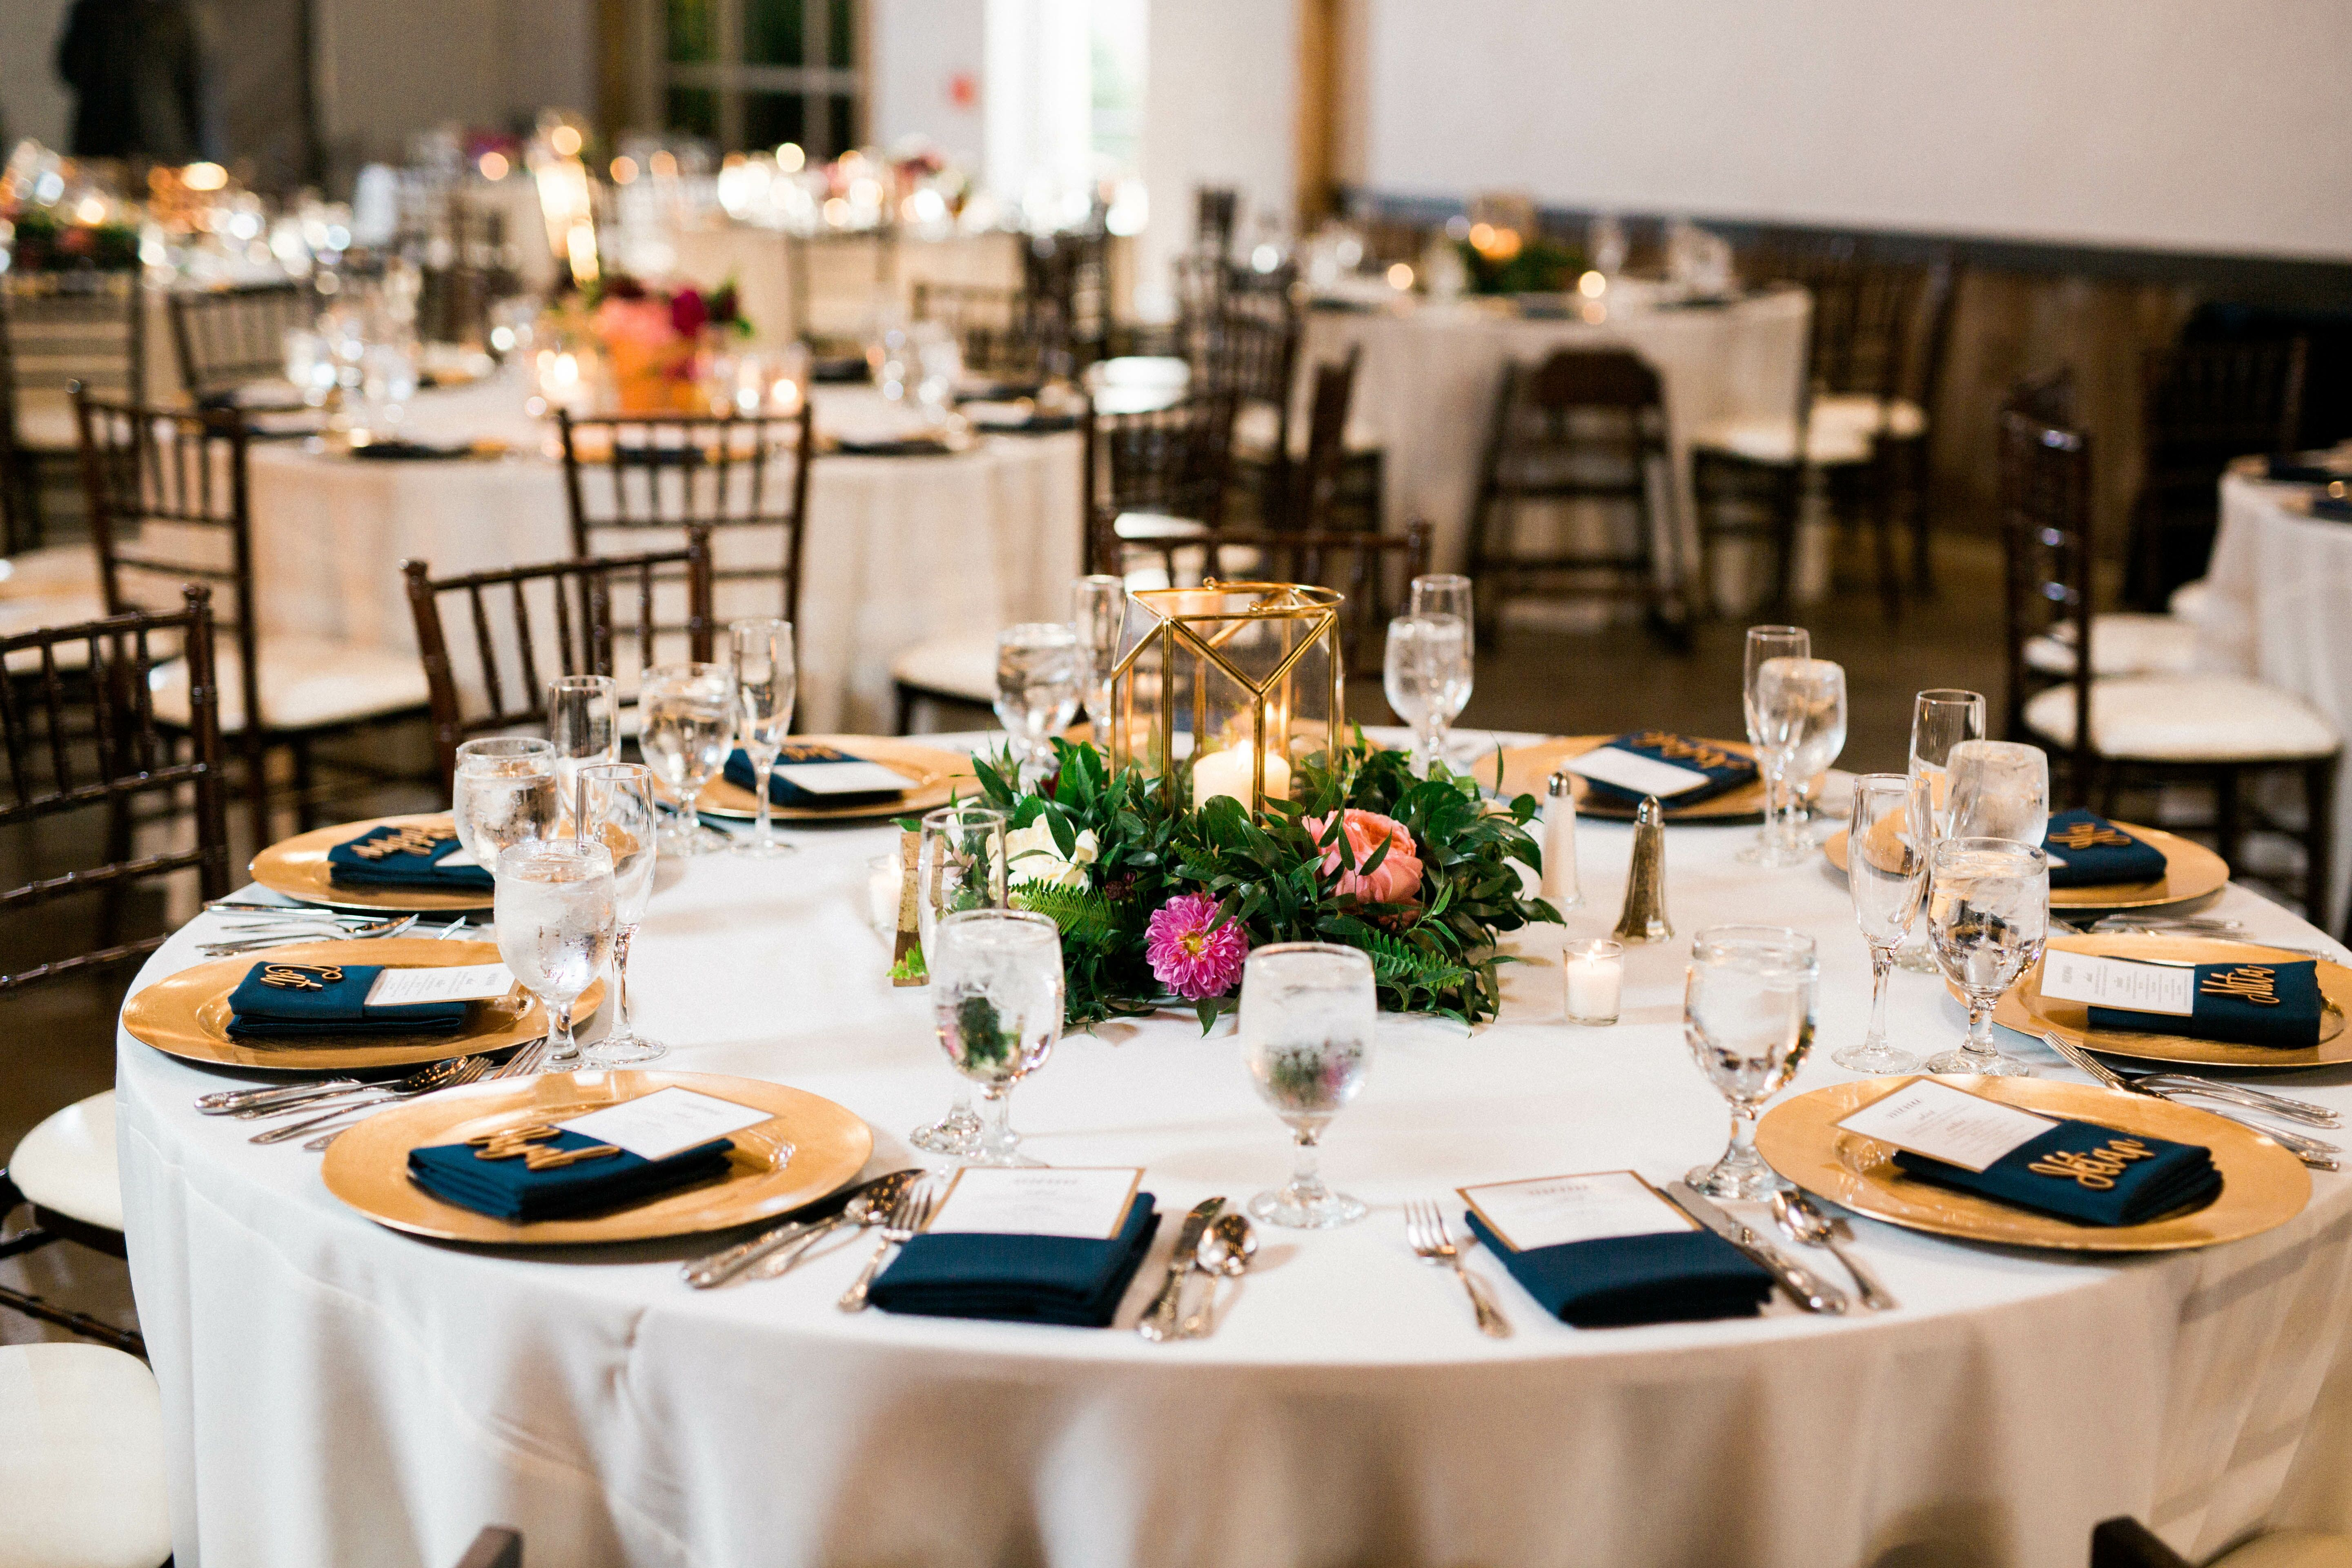 Tablescape With Geometric Terrariums And Metallic Accents